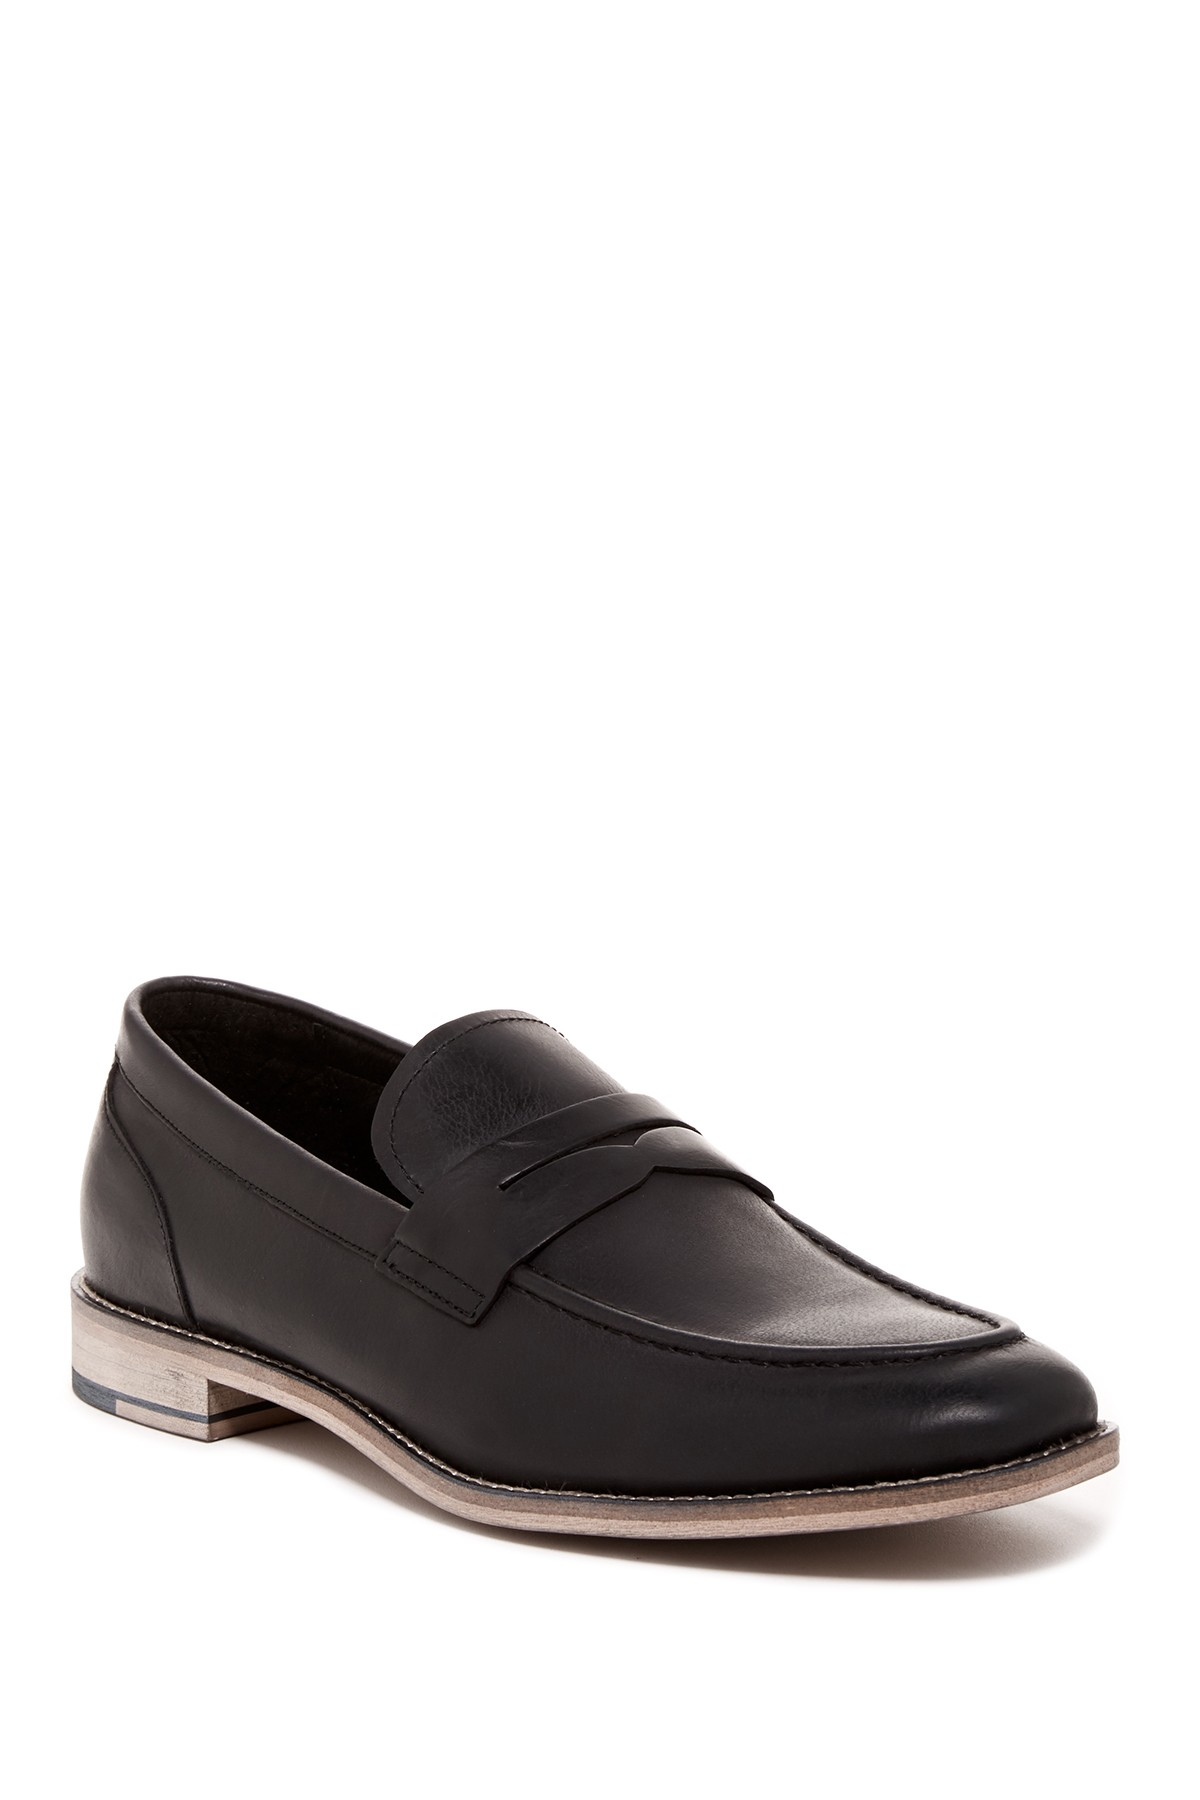 Nordstrom Rack Womens Clarks Shoes